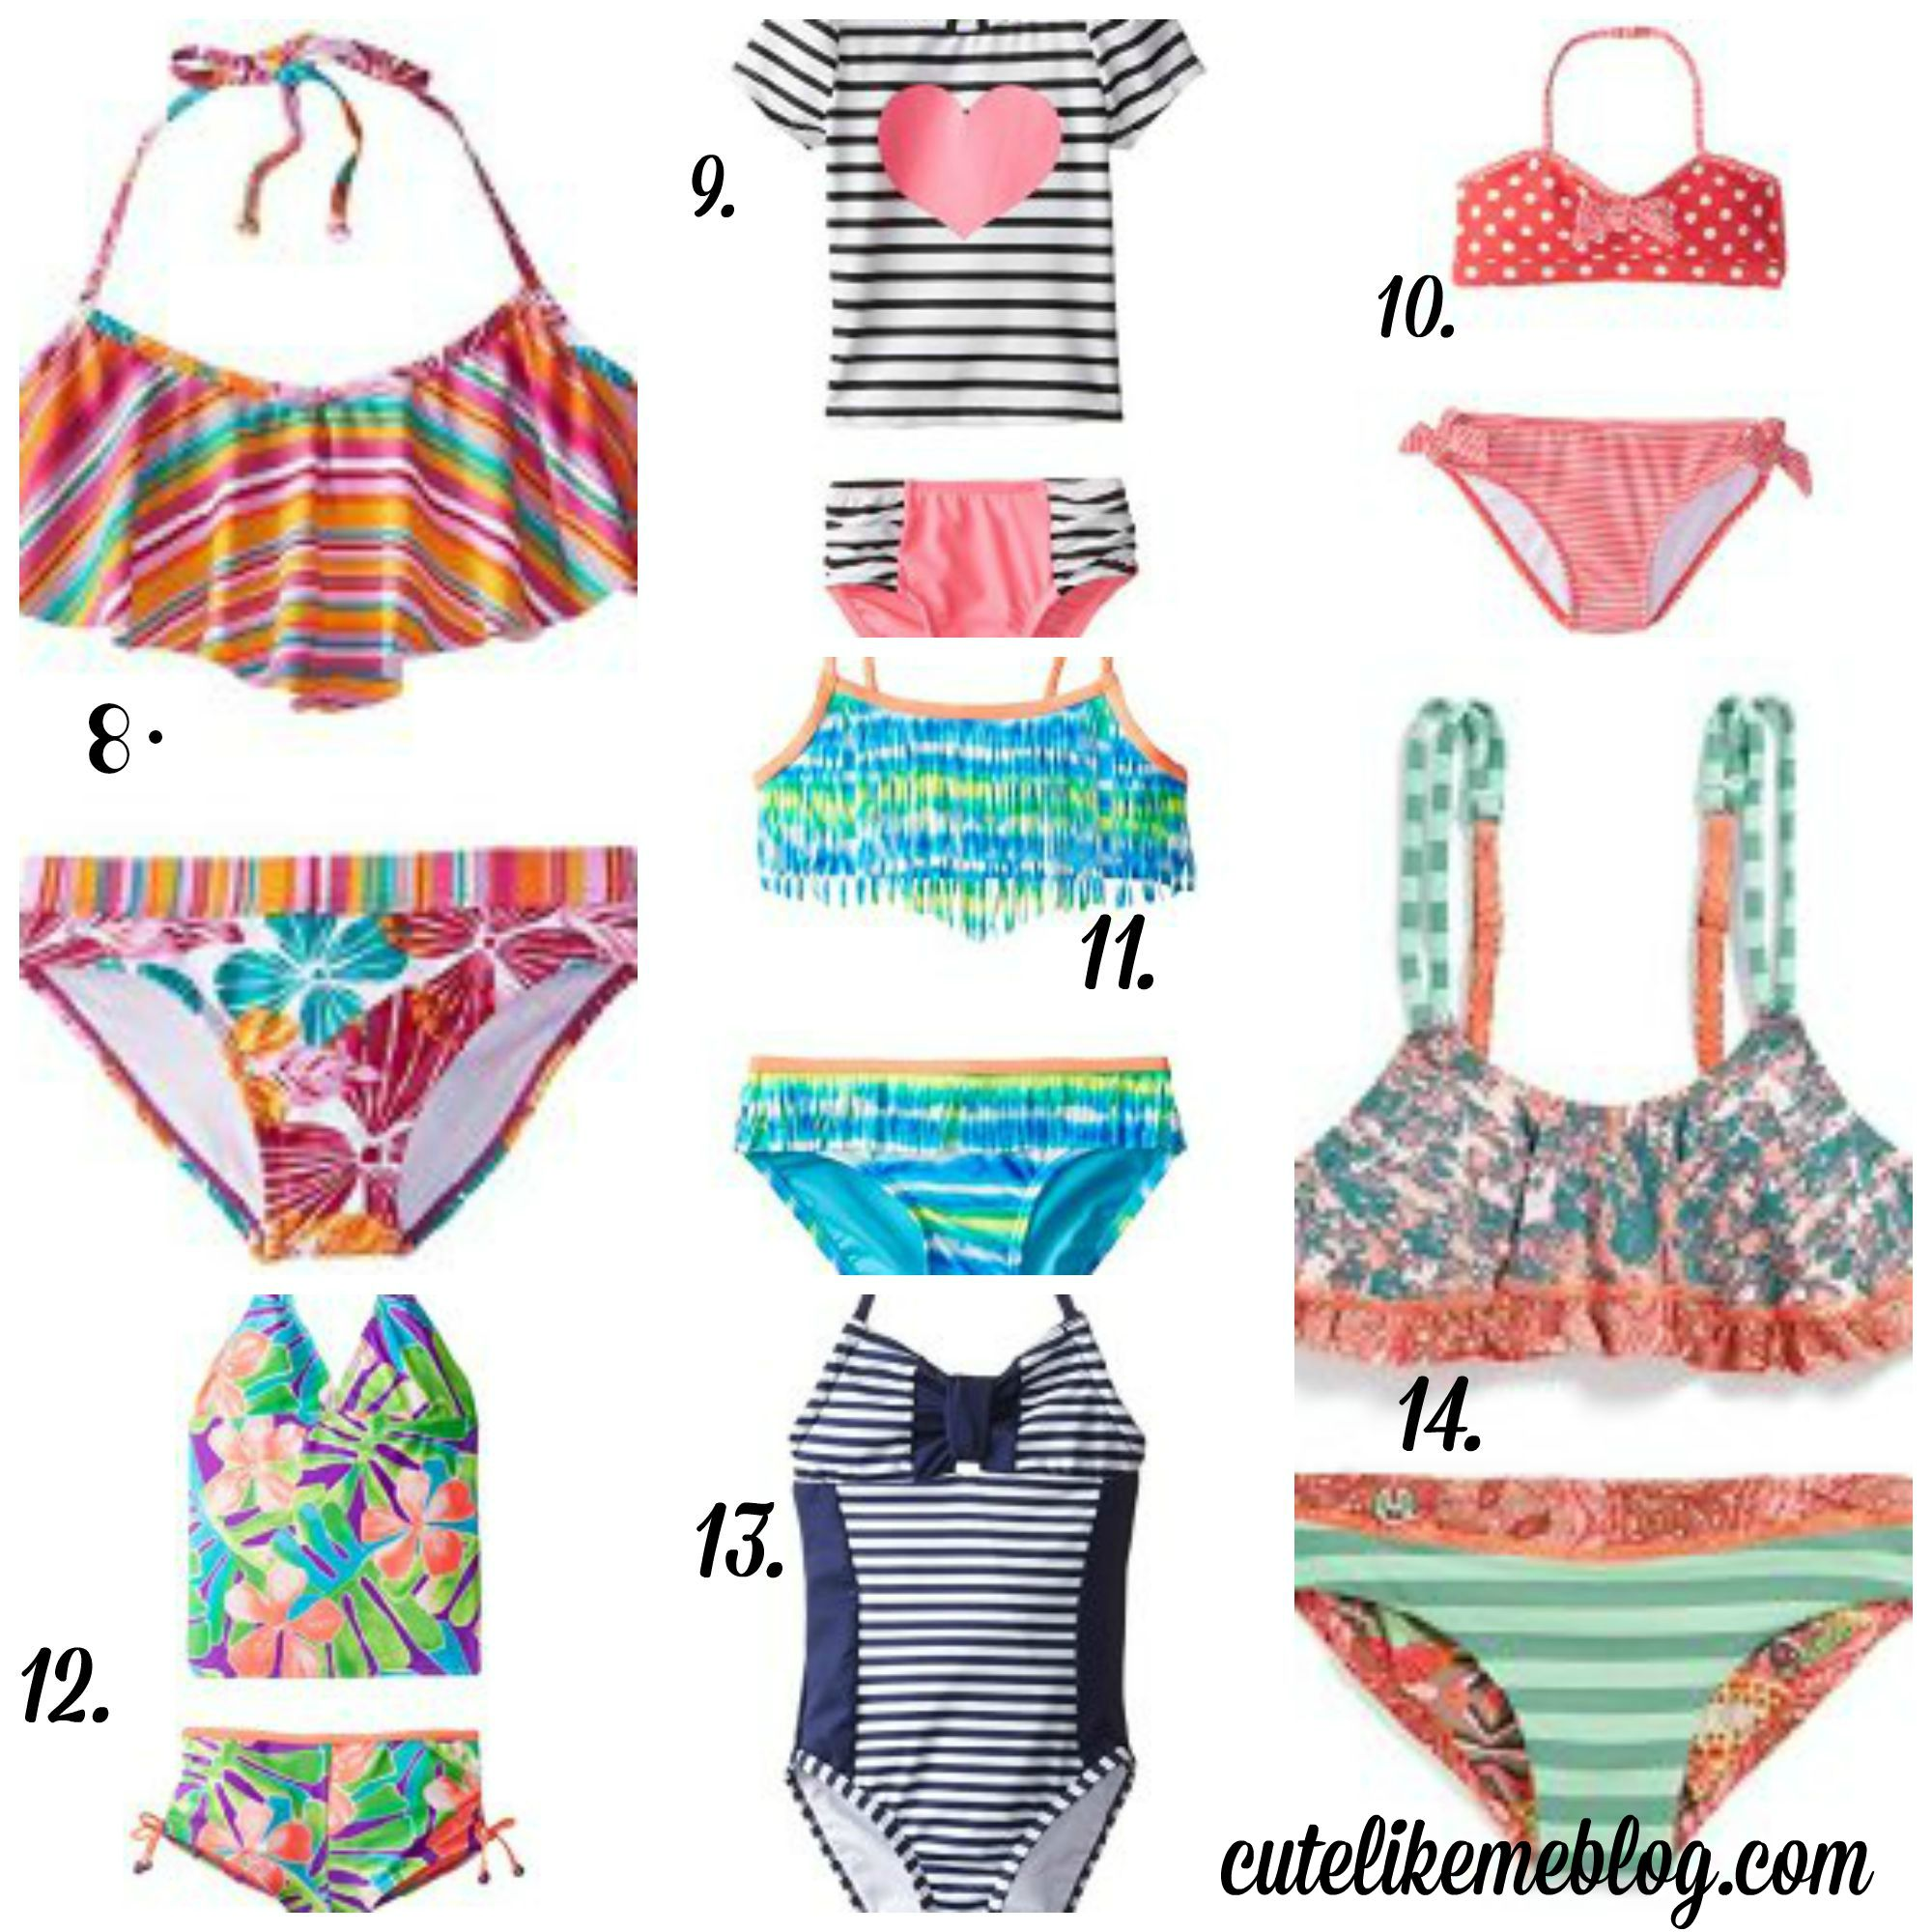 lemons and limes carters nautica jantzen baby bums roxy vaenait gossip girl these are the days cute like me amazon swimwear 2